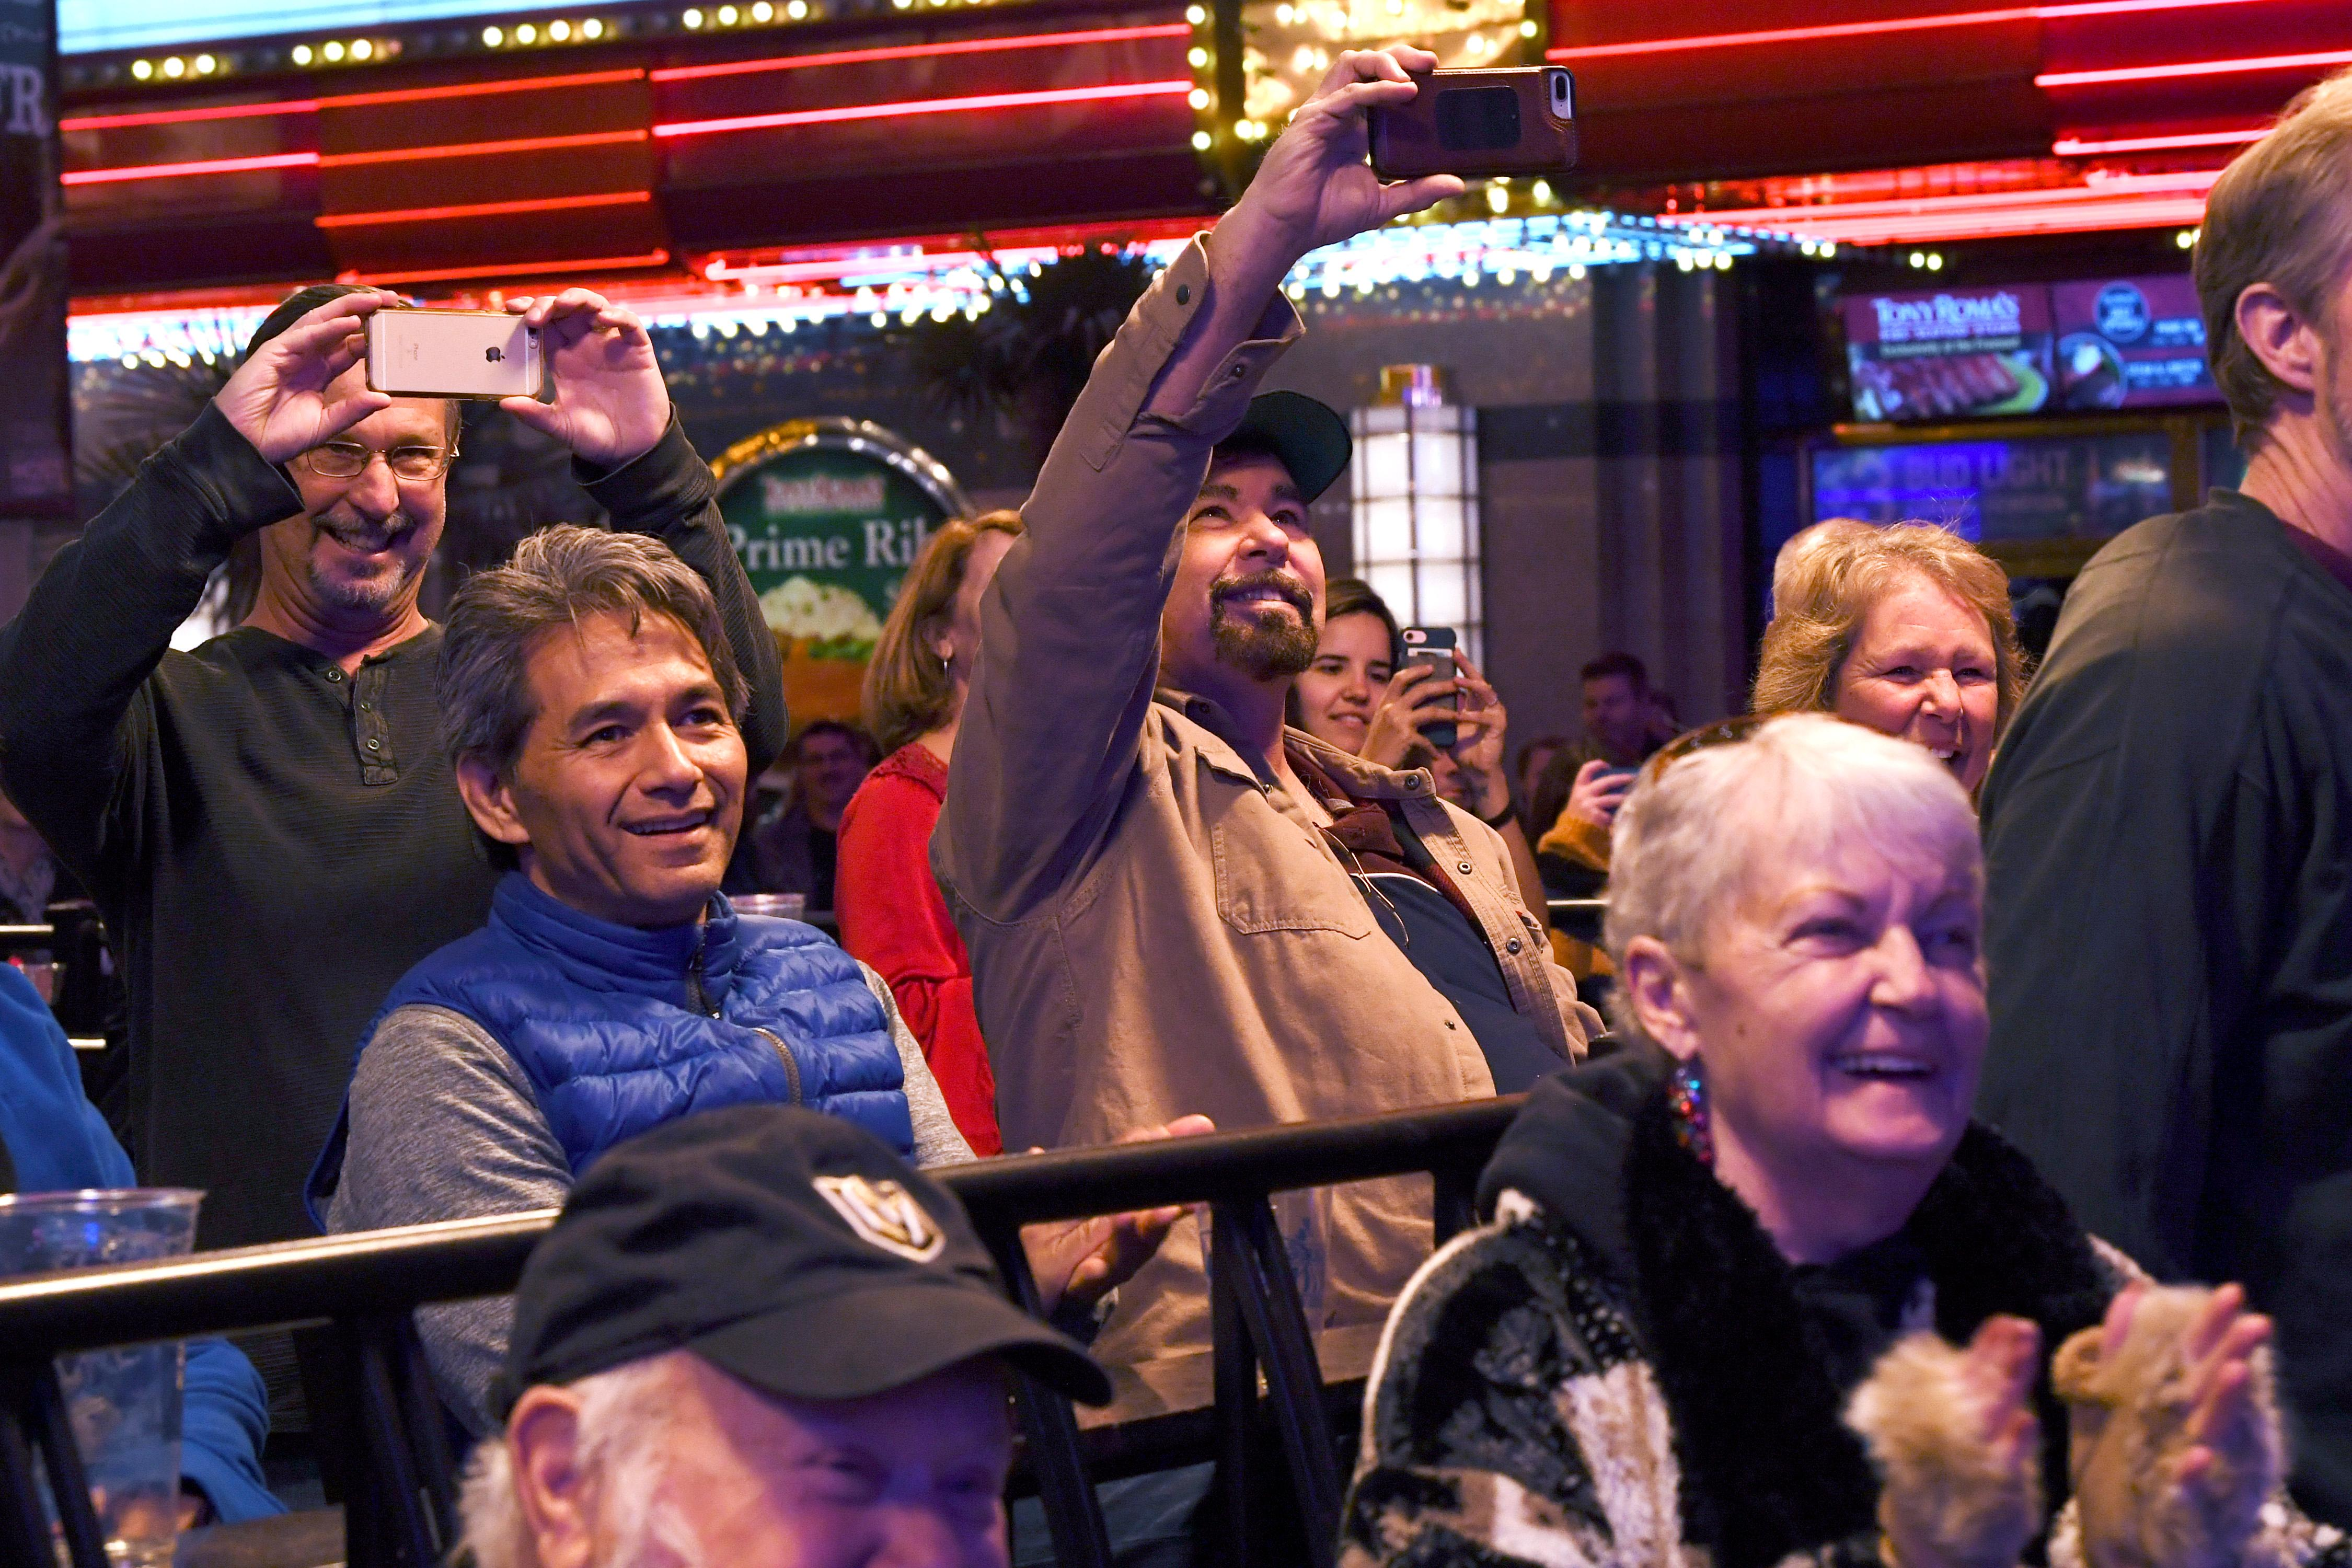 Bystanders enjoy entertainers during the annual lighting of a Christmas tree at the Fremont Street Experience Tuesday, December 4, 2018. CREDIT: Sam Morris/Las Vegas News Bureau